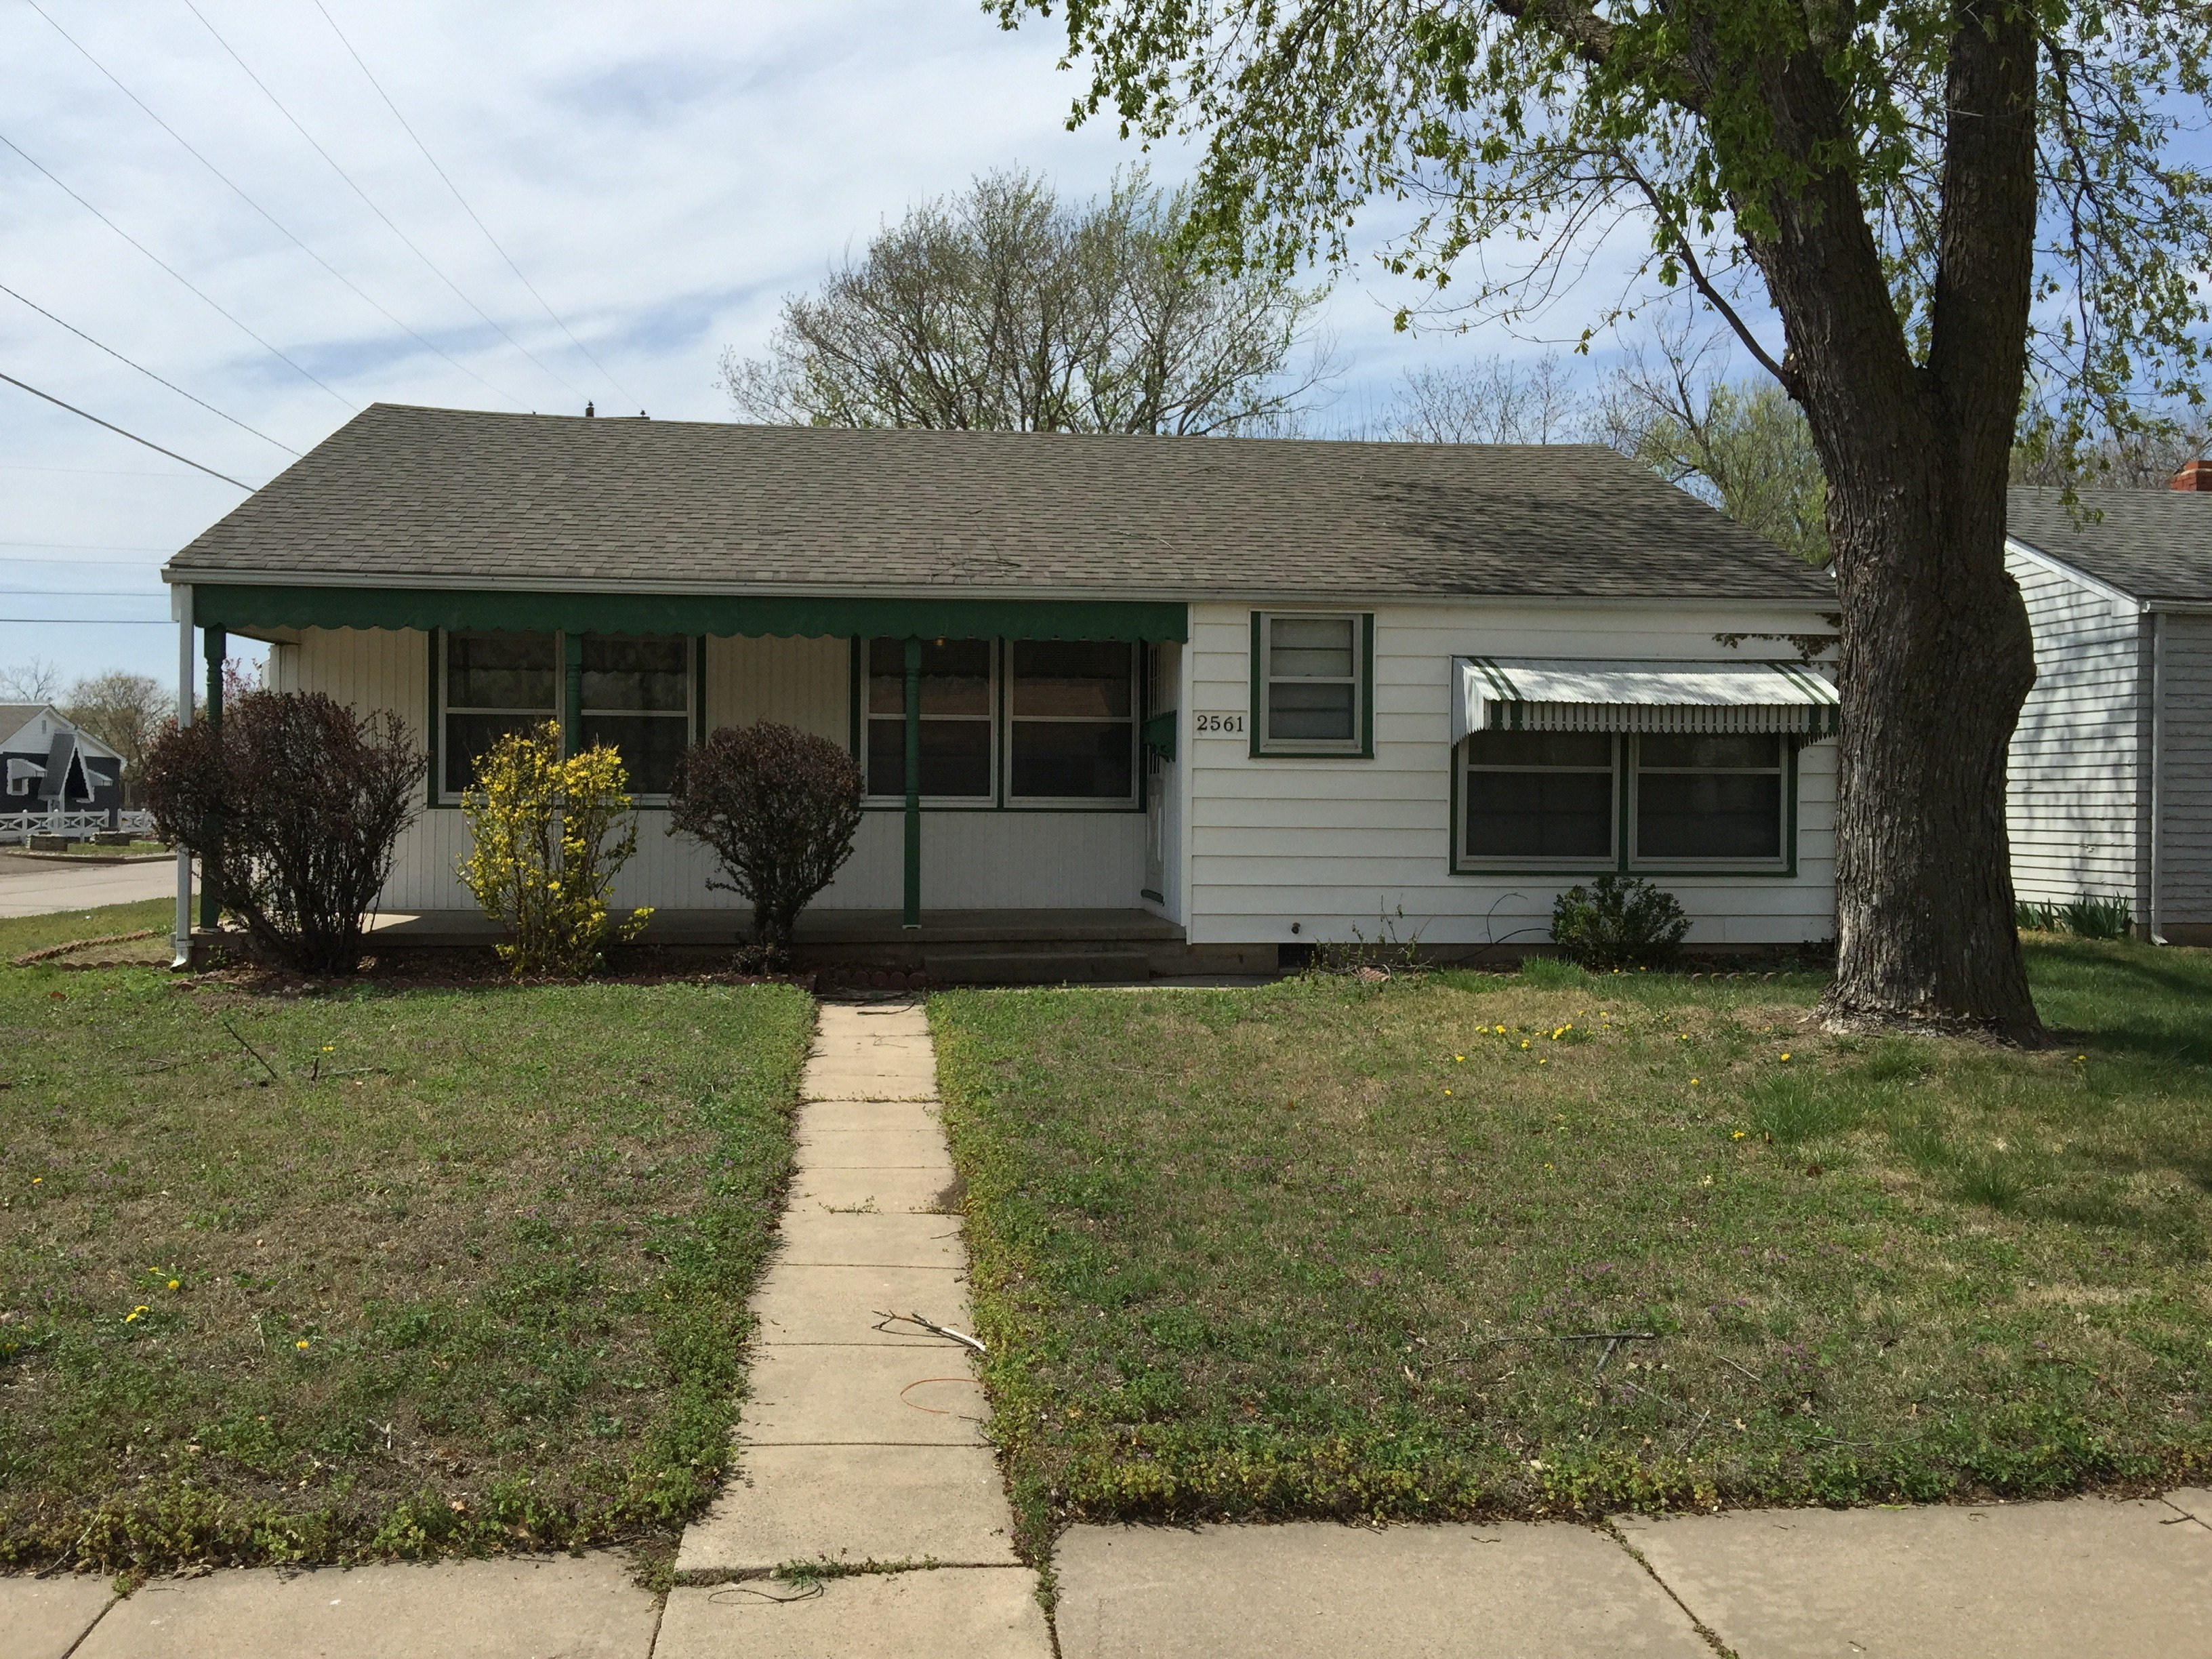 Best 2561 S Greenwood St Wichita Ks 67216 3 Bedroom Apartment With Pictures